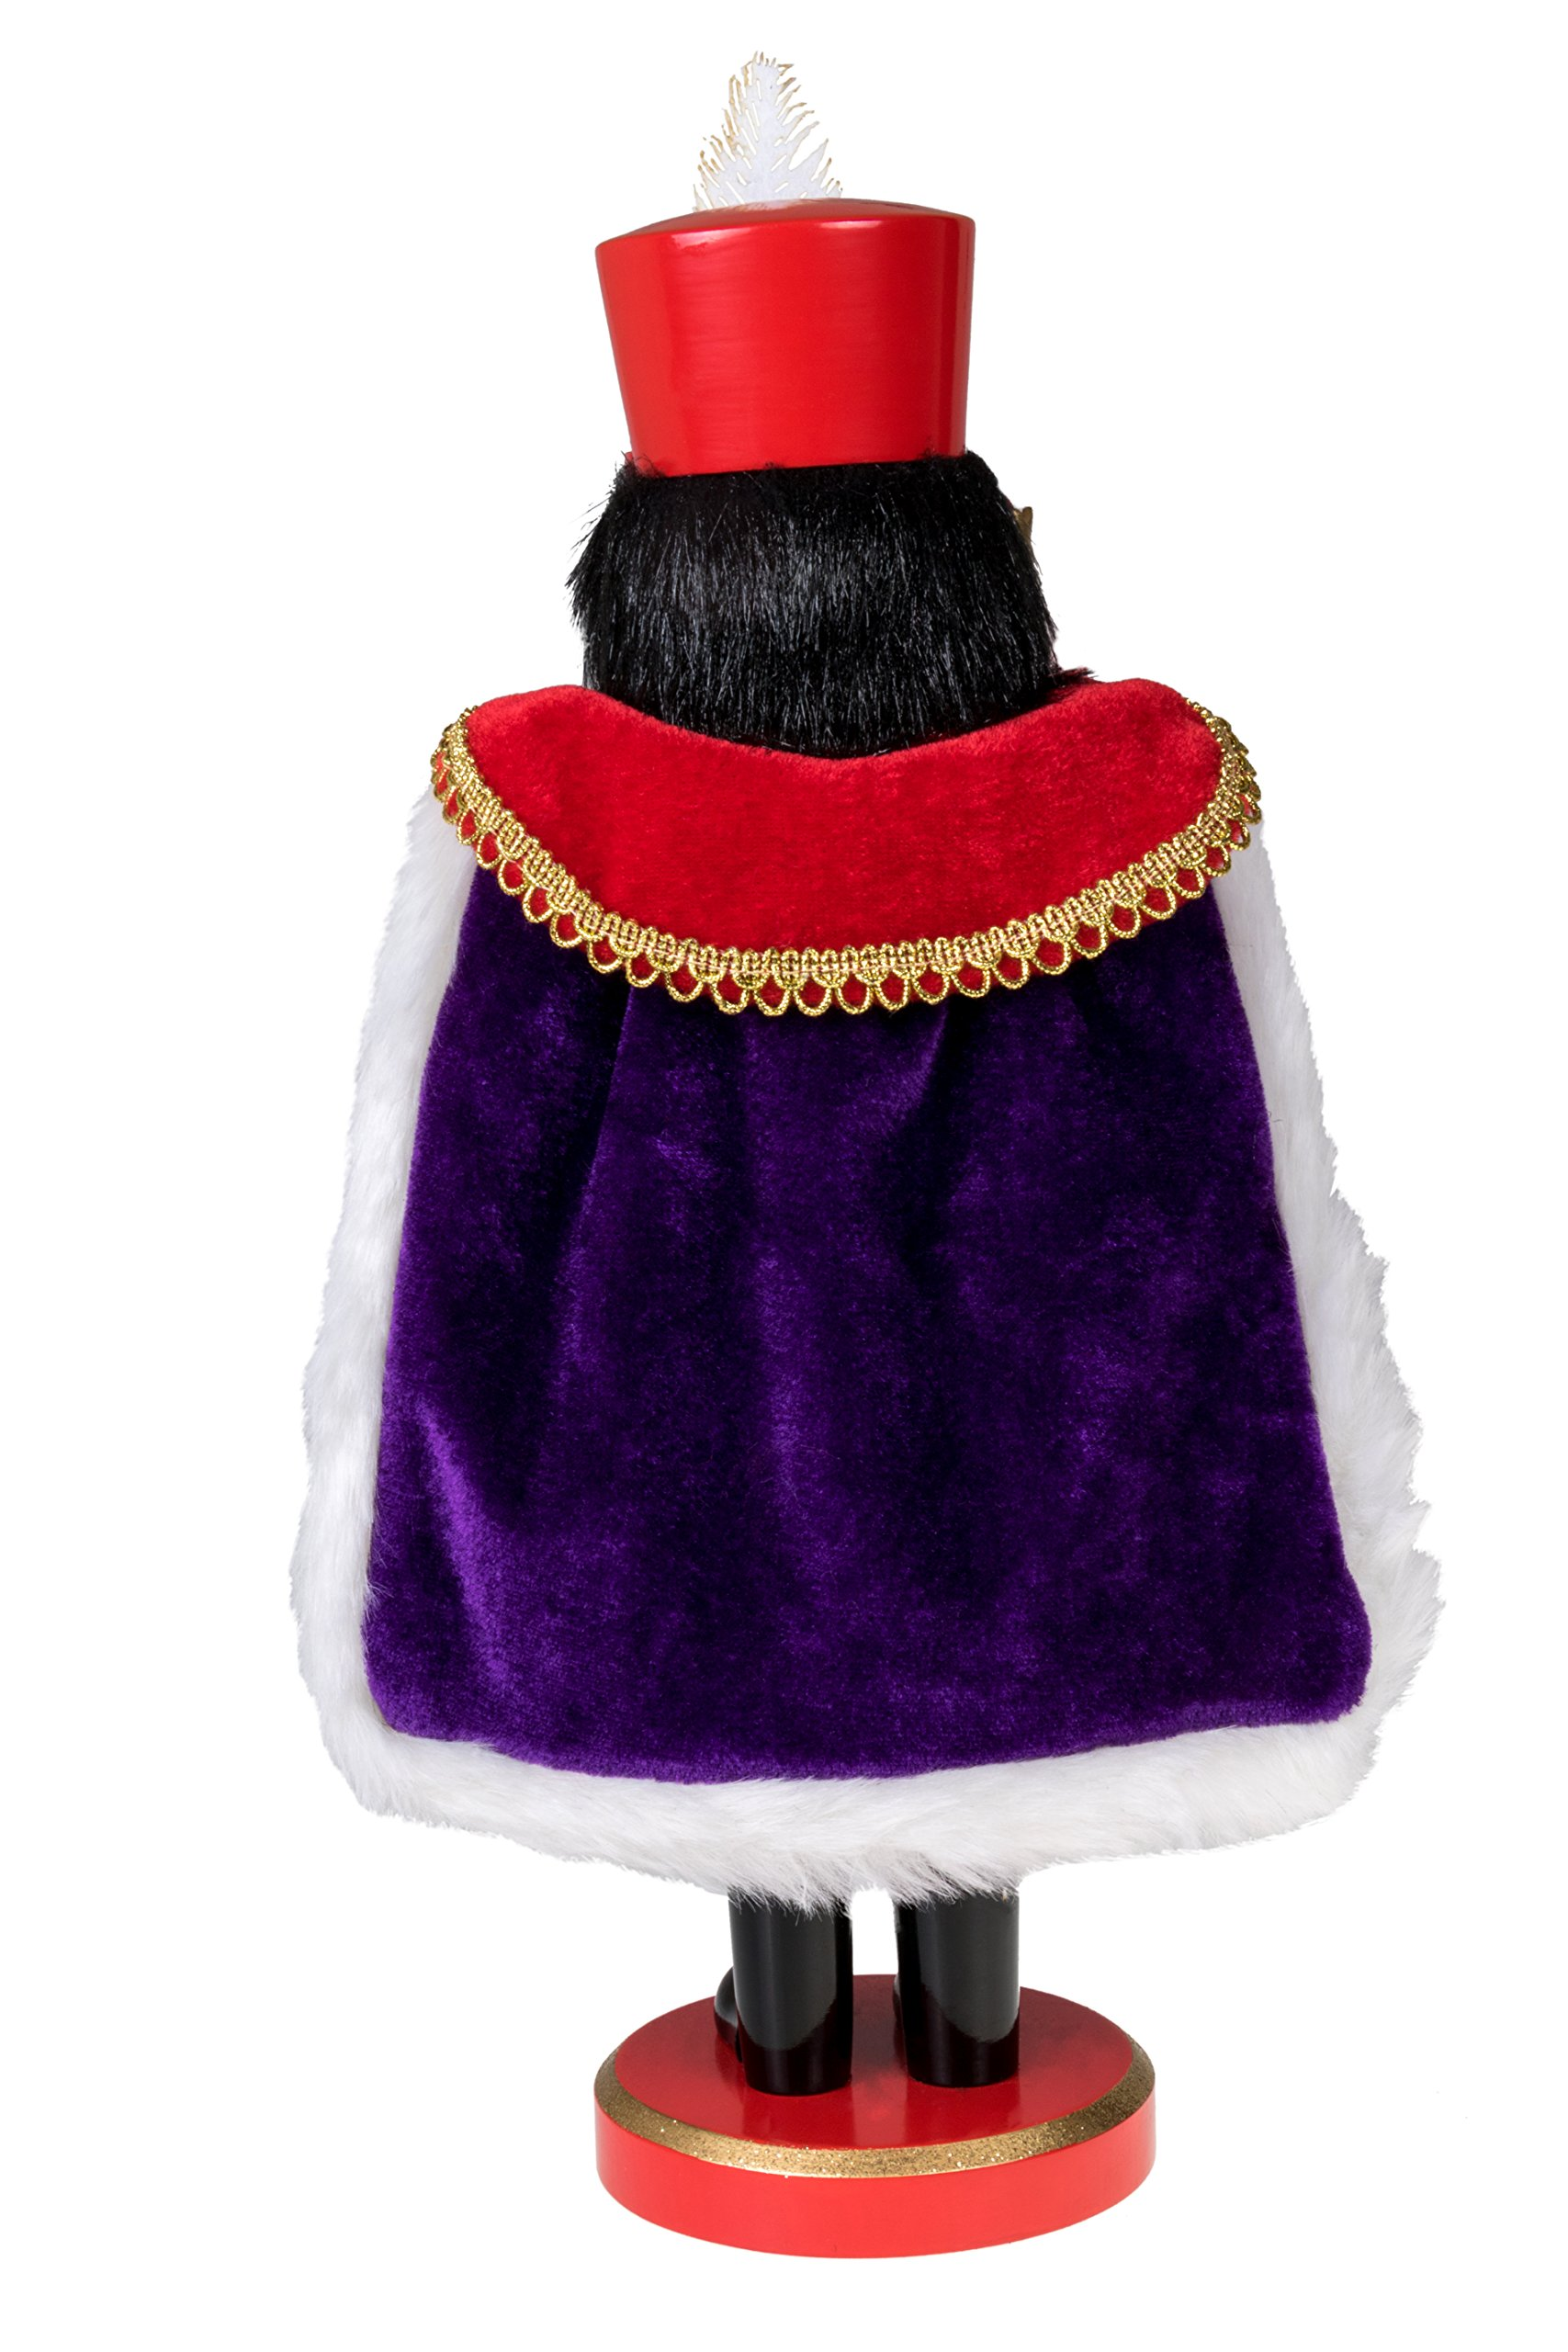 Clever Creations Red Prince Wooden Nutcracker Wearing Purple Cape Holding Toy Nutcracker Gift | Festive Decor | Perfect for Shelves and Tables | 100% Wood | 14'' Tall by Clever Creations (Image #3)